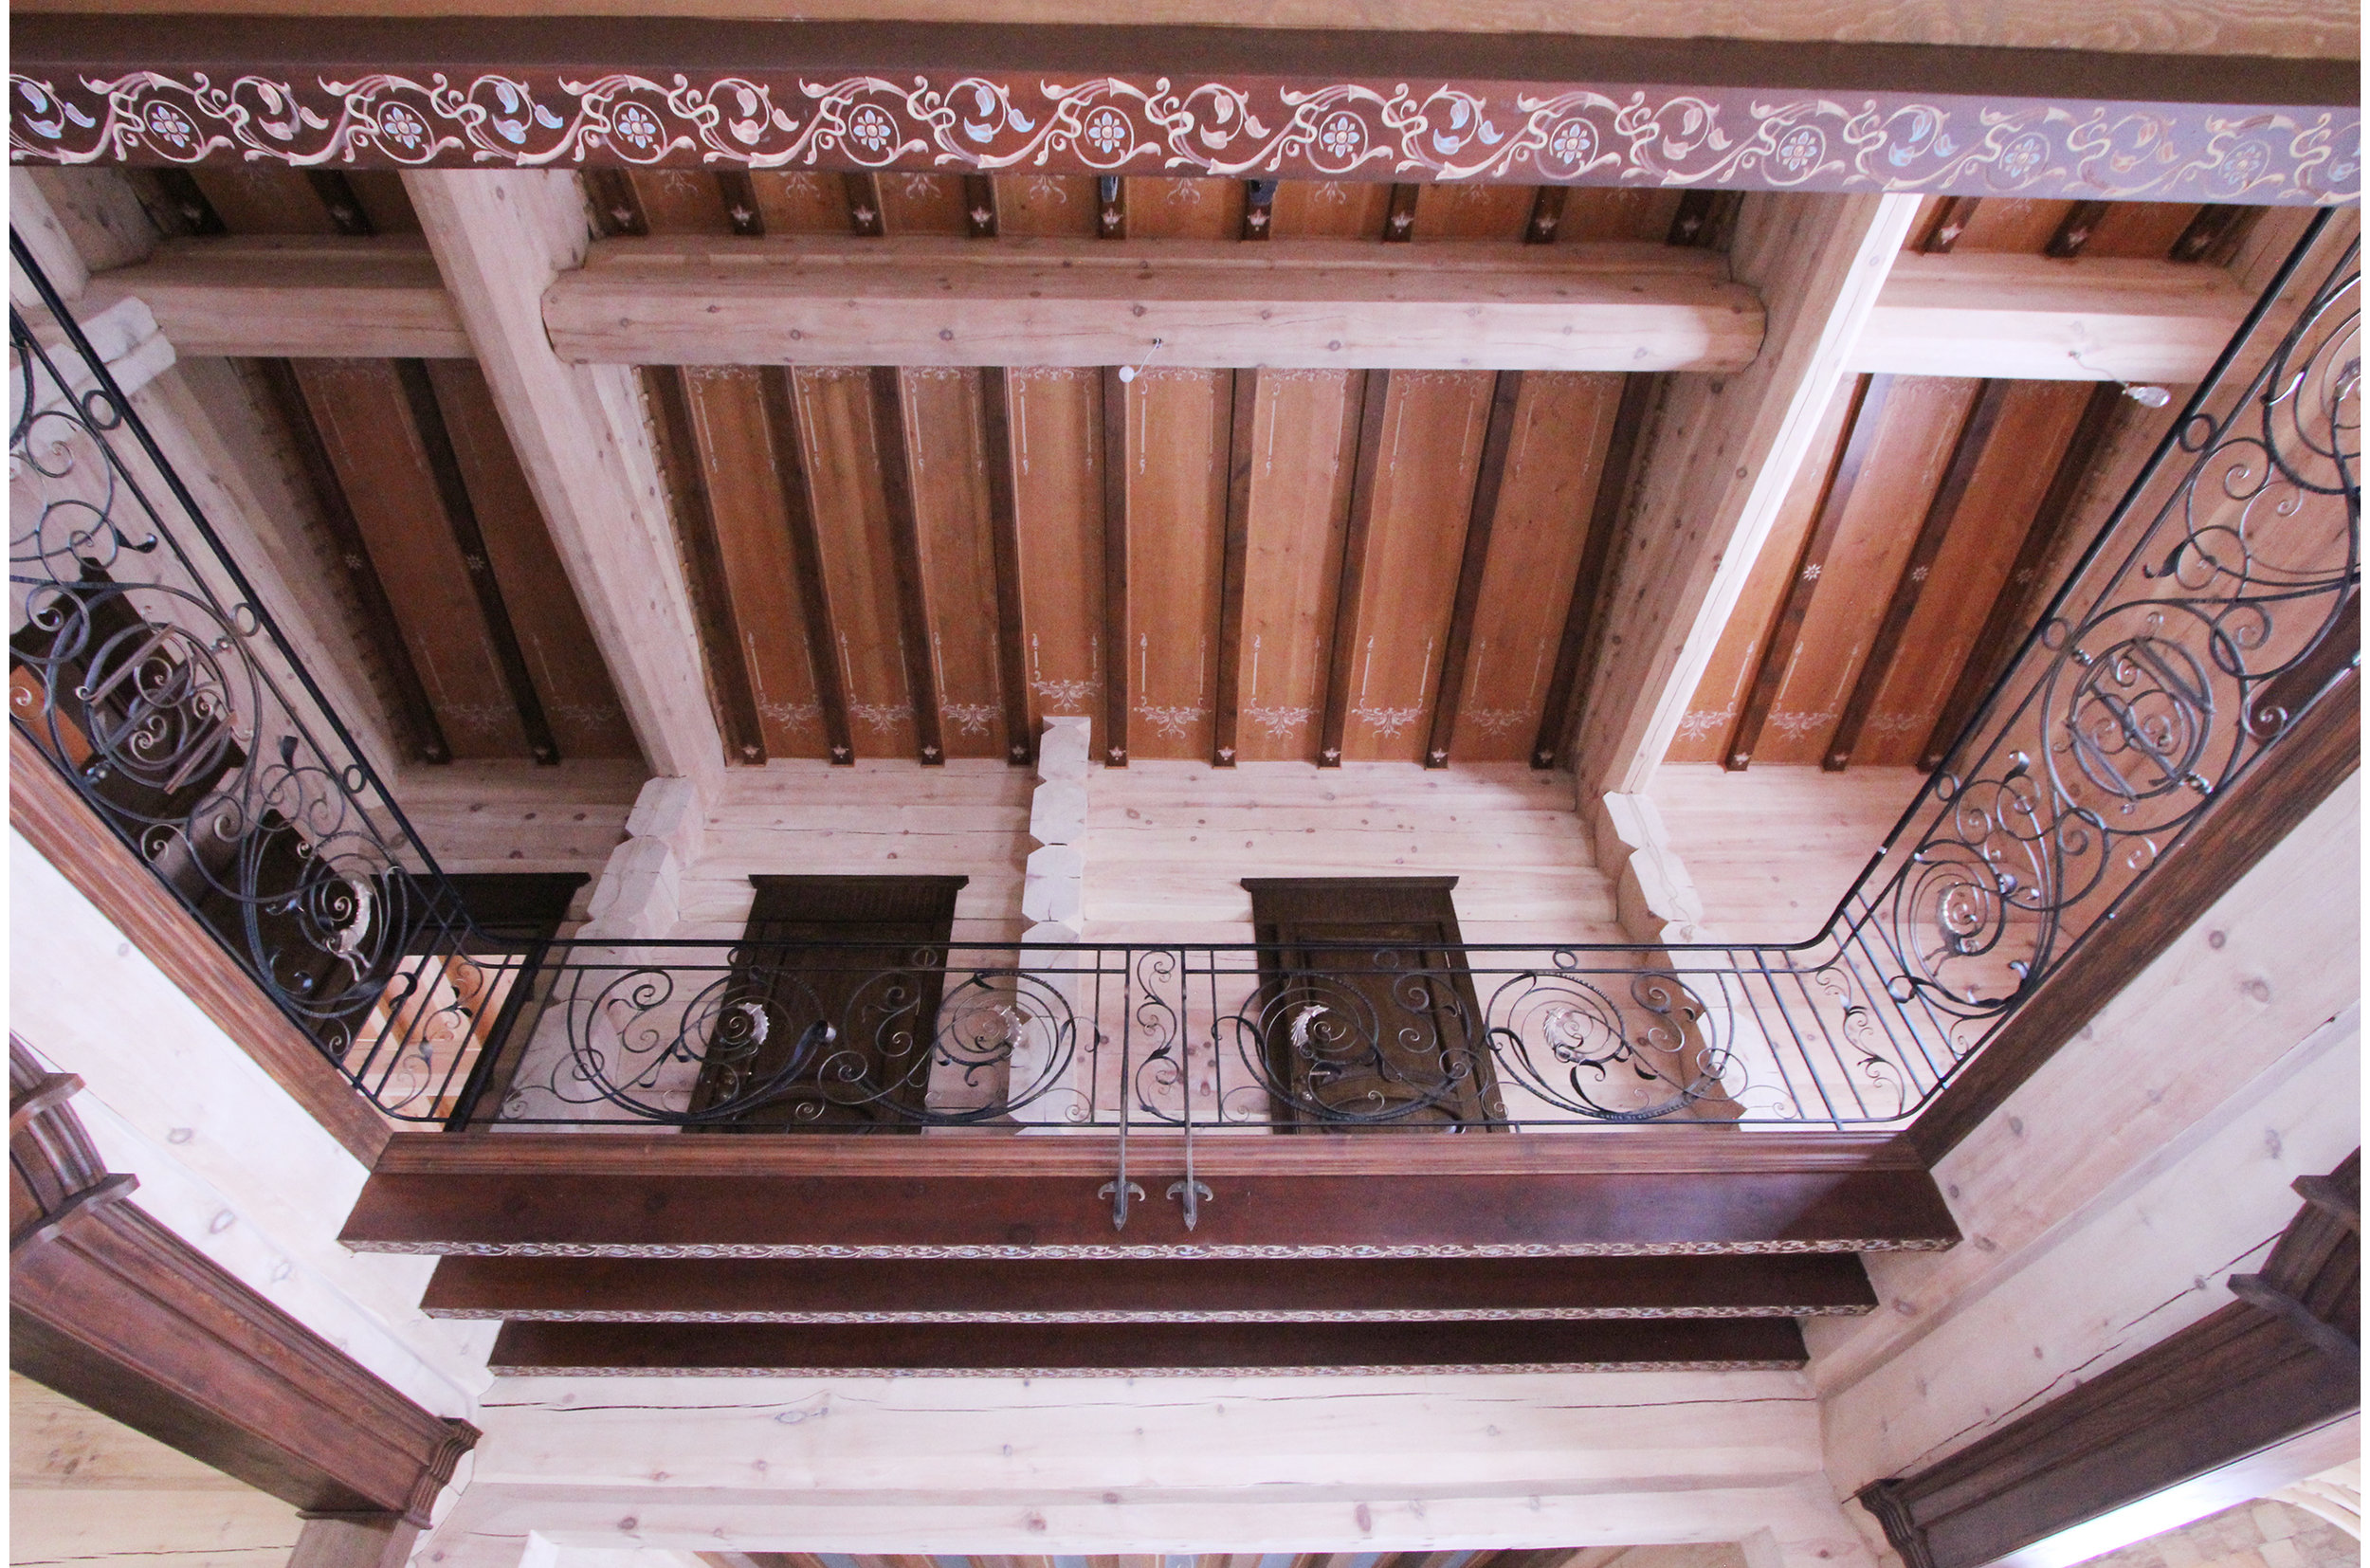 Copy of Wooden ceiling decorated with floral ornaments